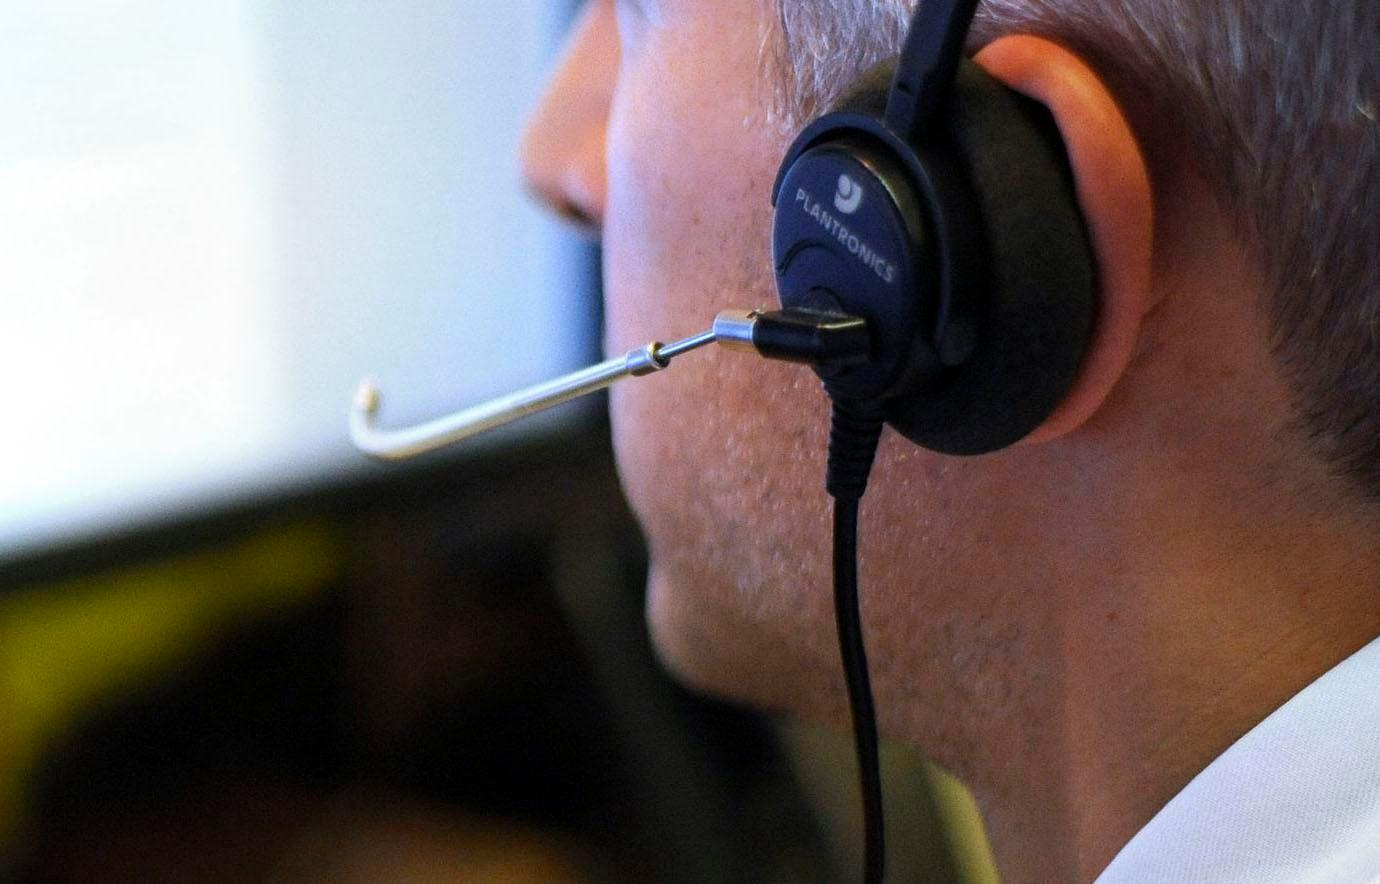 More than a million calls to Universal Credit helpline have gone unanswered in the past year